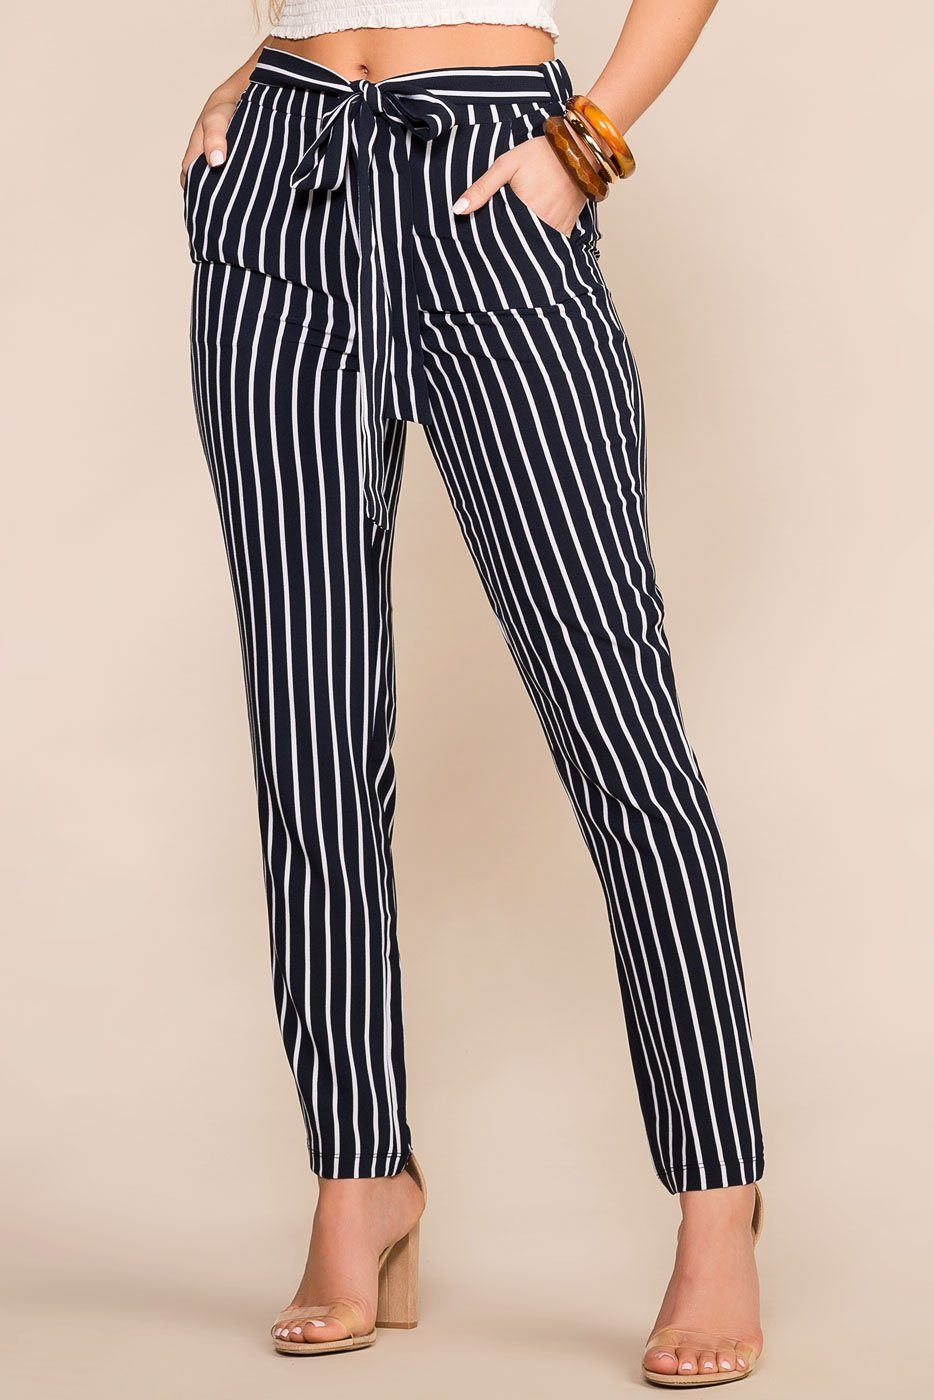 Priceless | Navy | Striped | High Waisted | Tie Pants | Womens